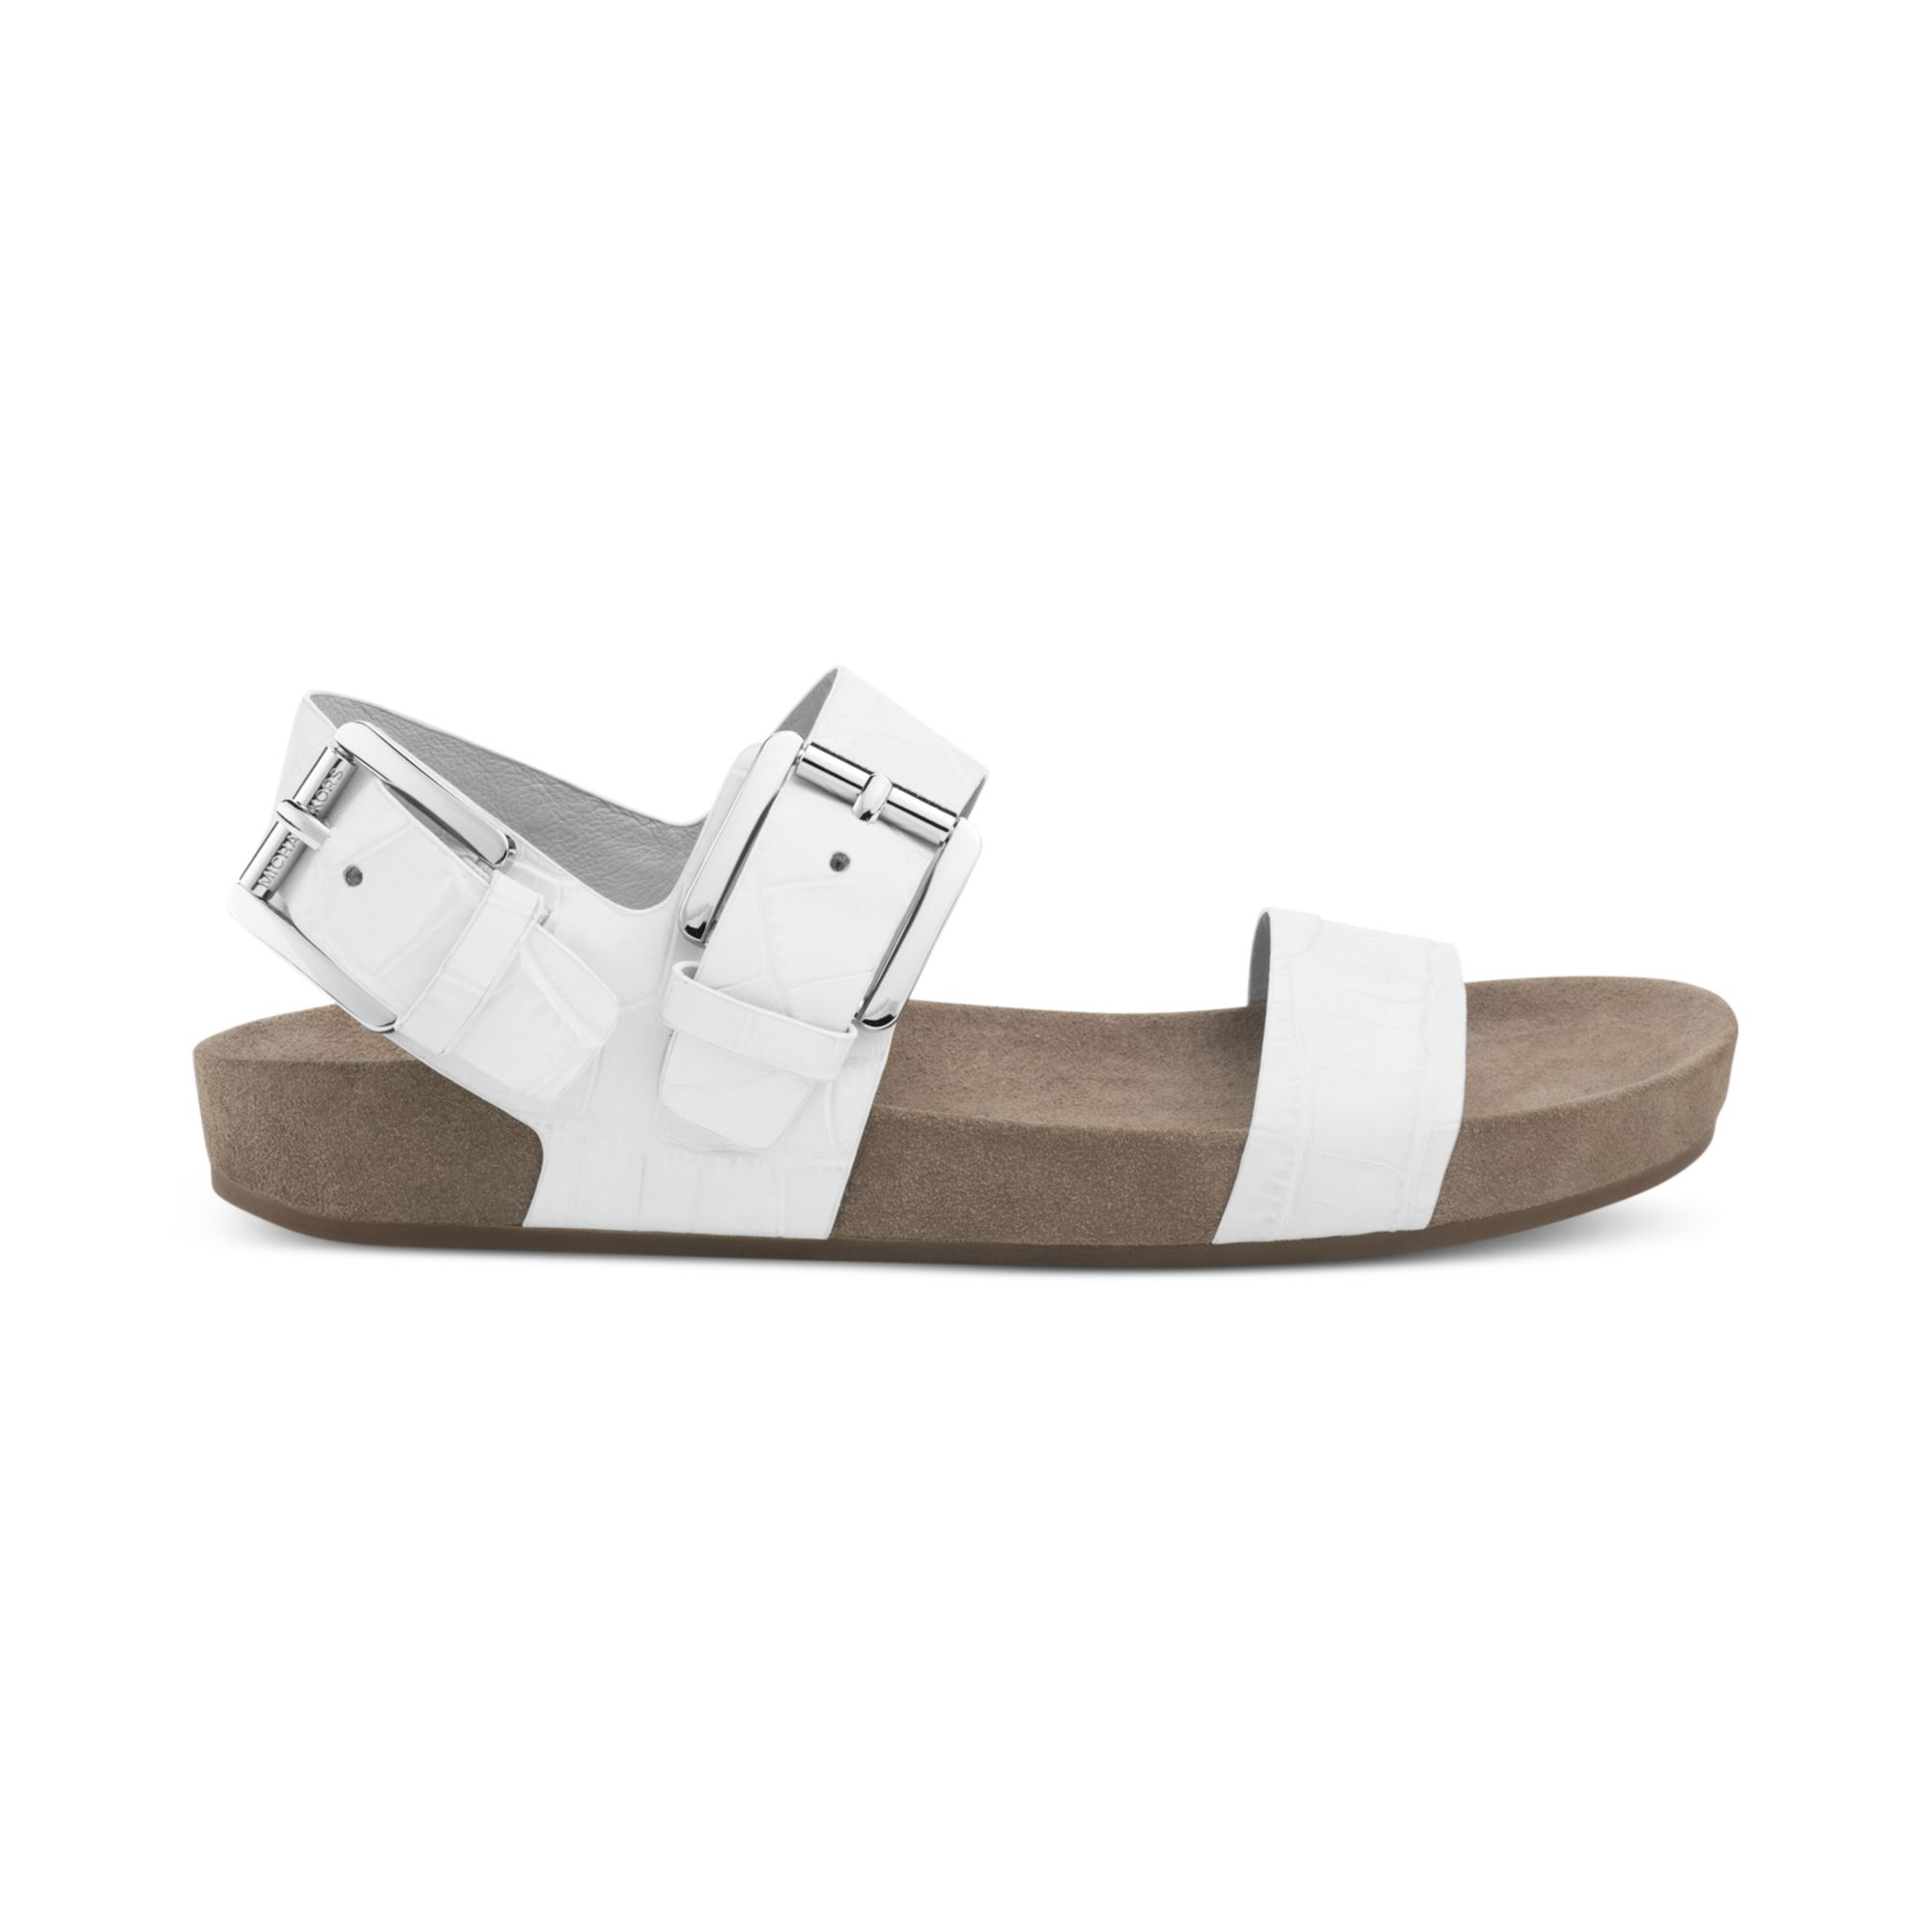 Lyst - Michael Kors Michael Sawyer Sandals in White